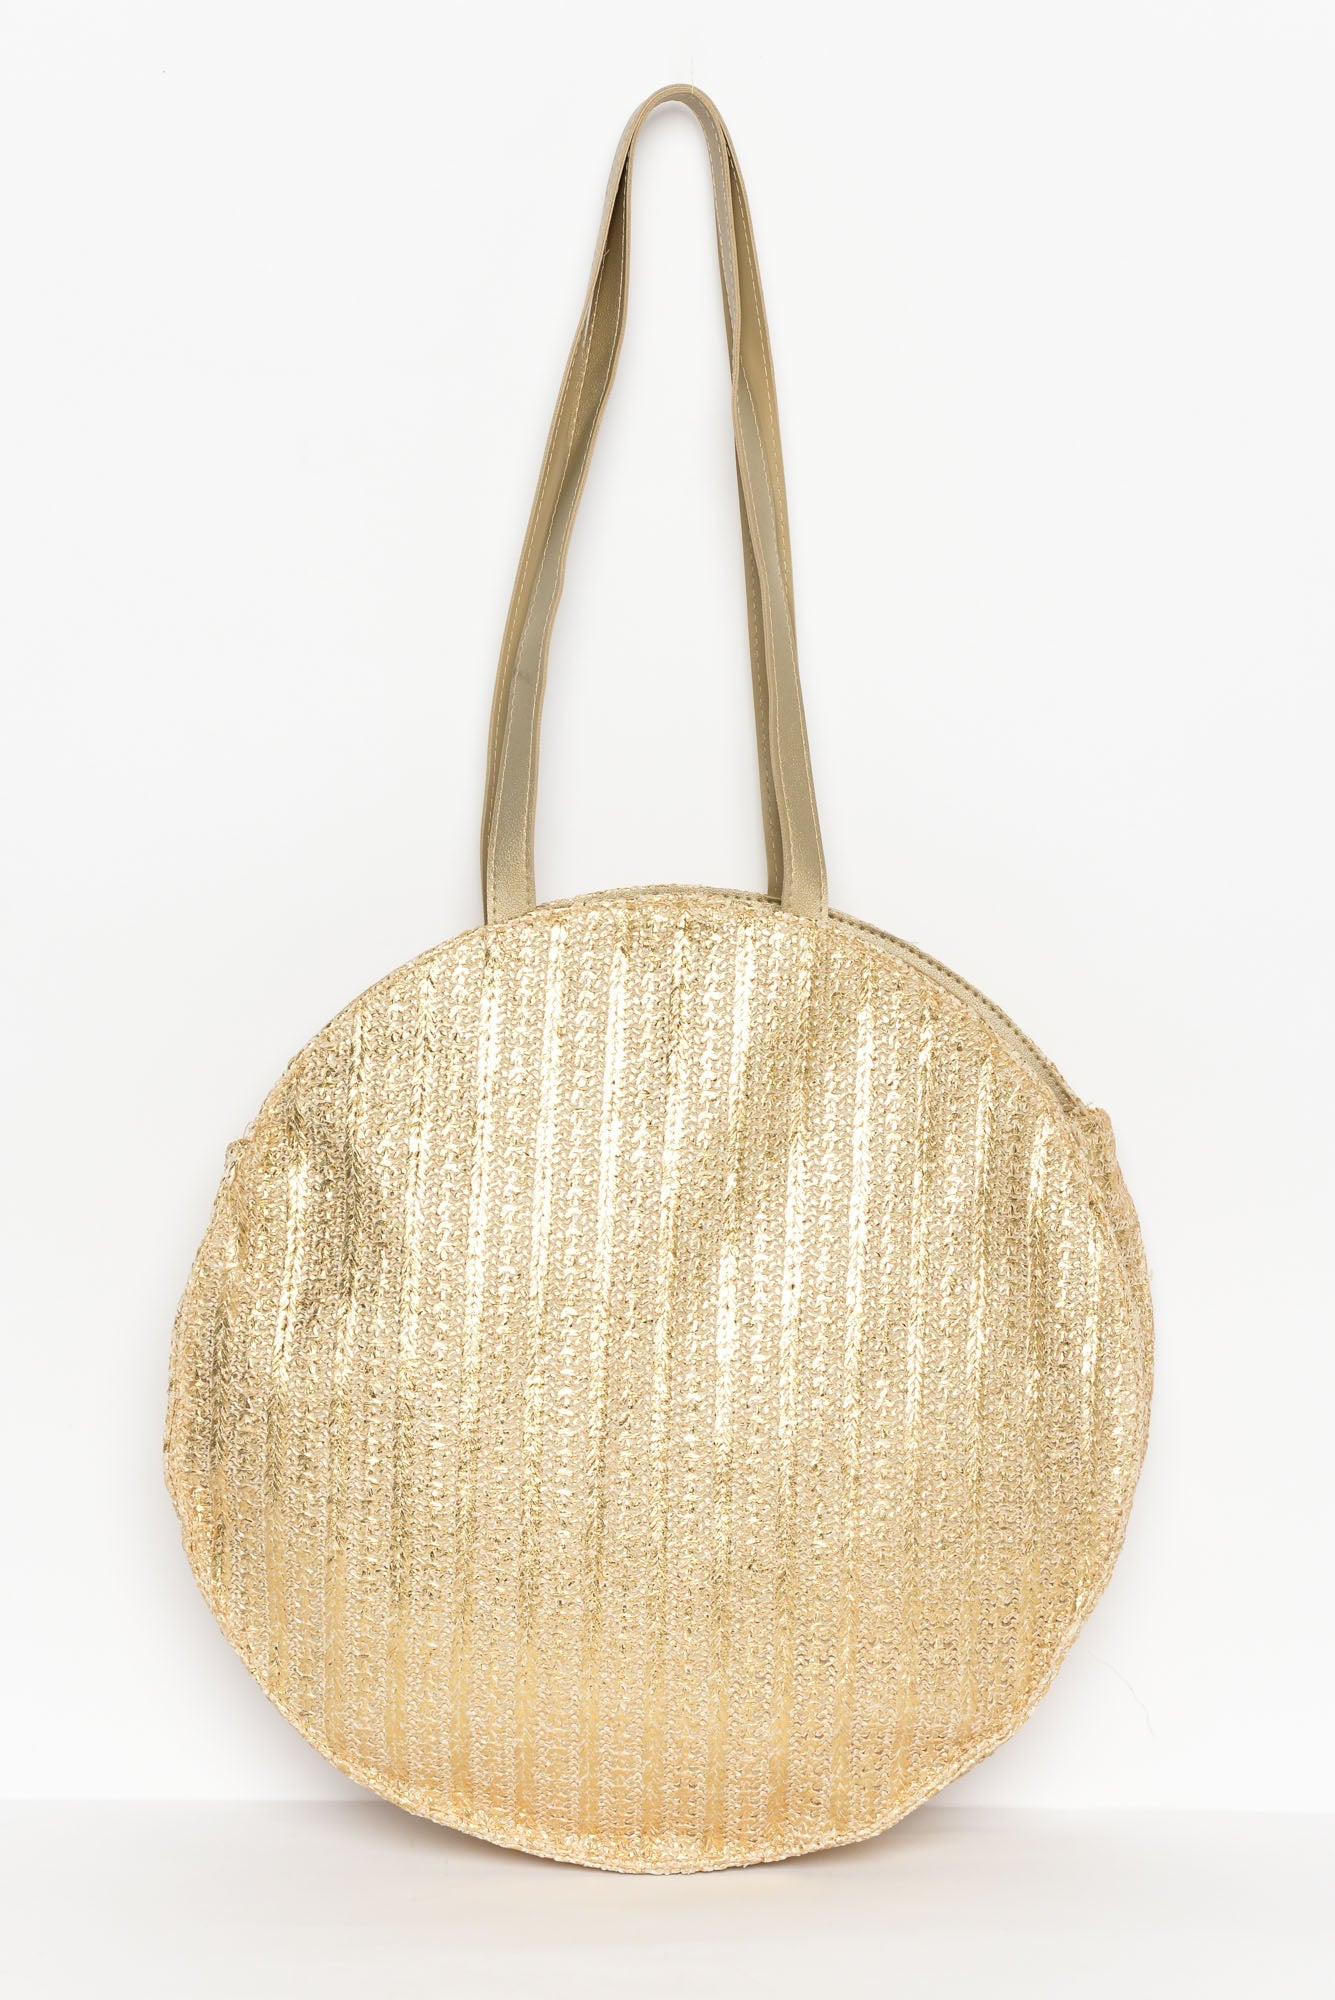 Sara Gold Metallic Large Tote Bag